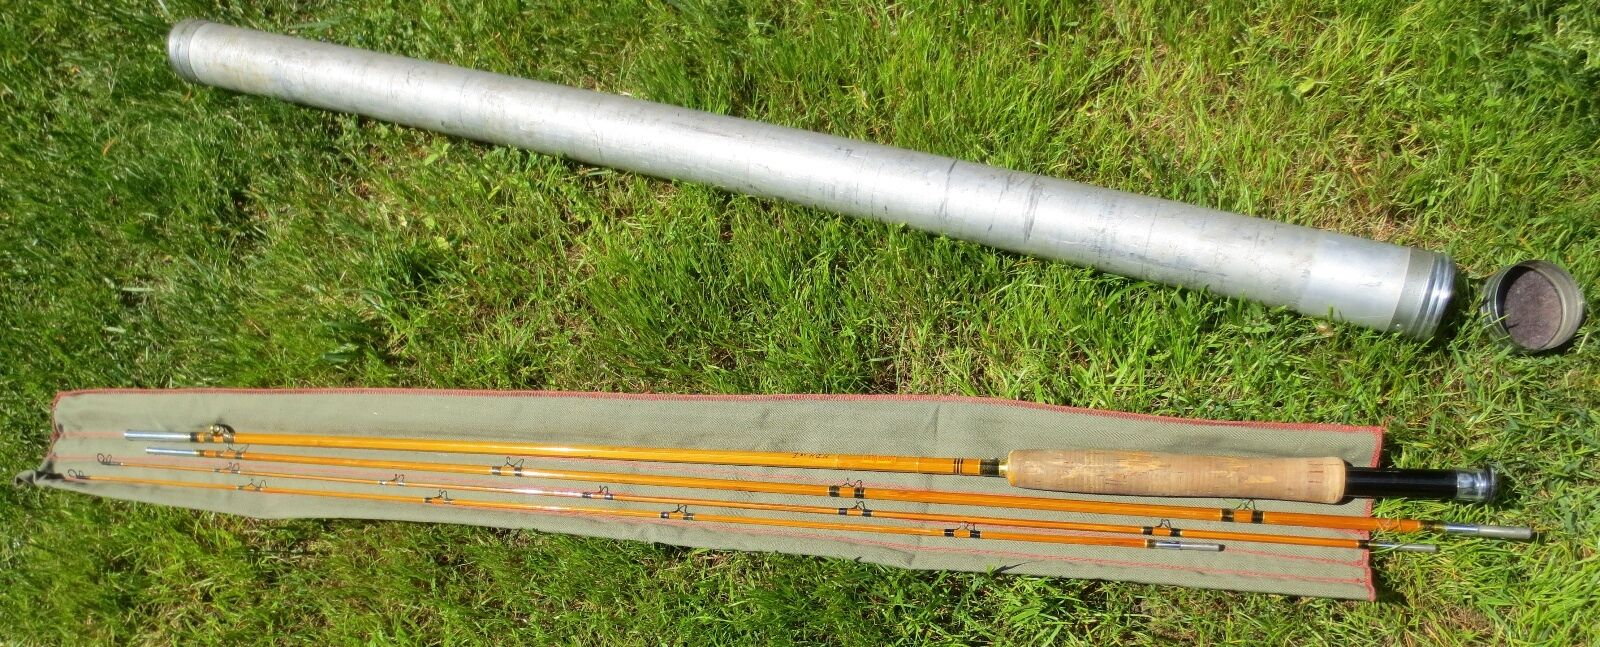 Vintage SOUTH BEND   CROSS Double Built 253 9' Split Bamboo Fly Fishing Pole